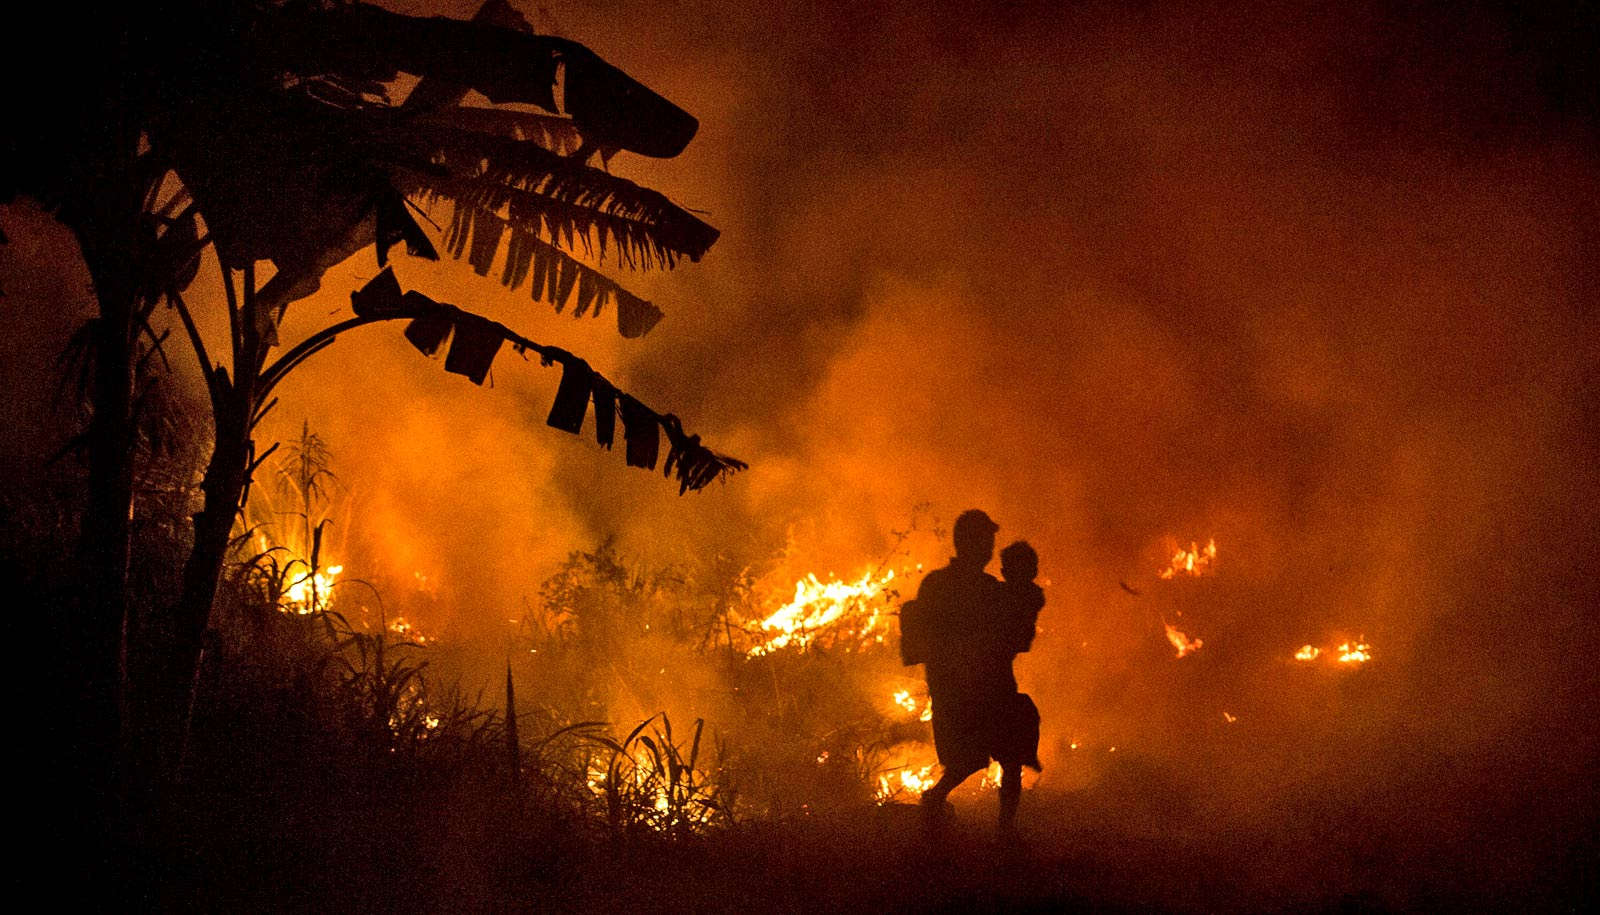 Indonesian fires robbed kids of height and future income